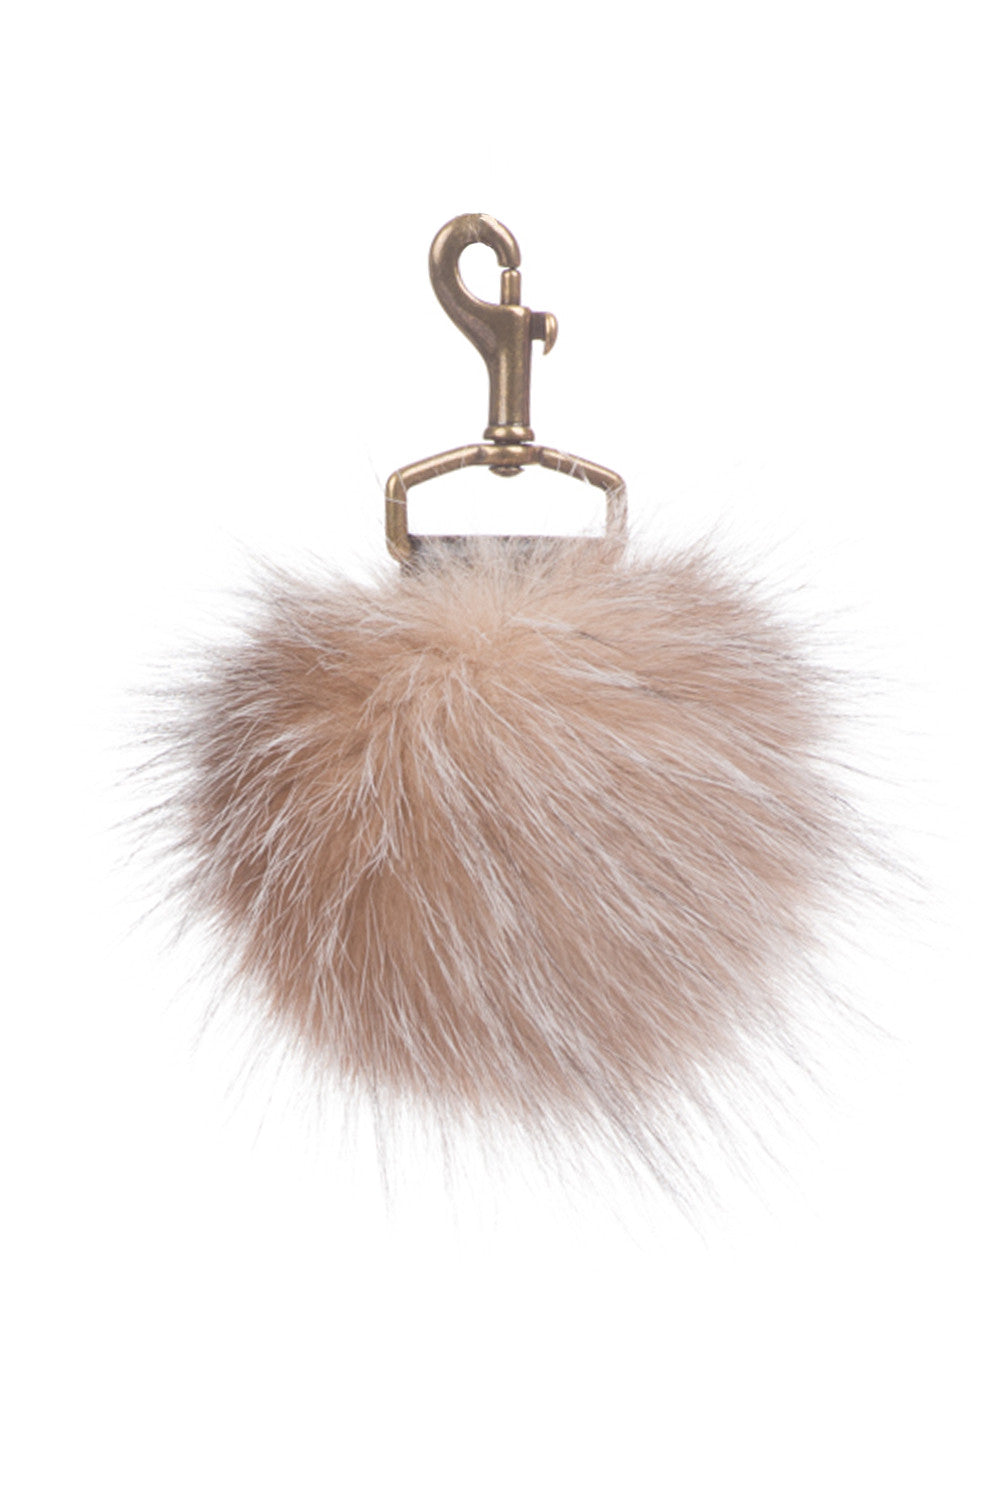 Fur Ball Key Chain